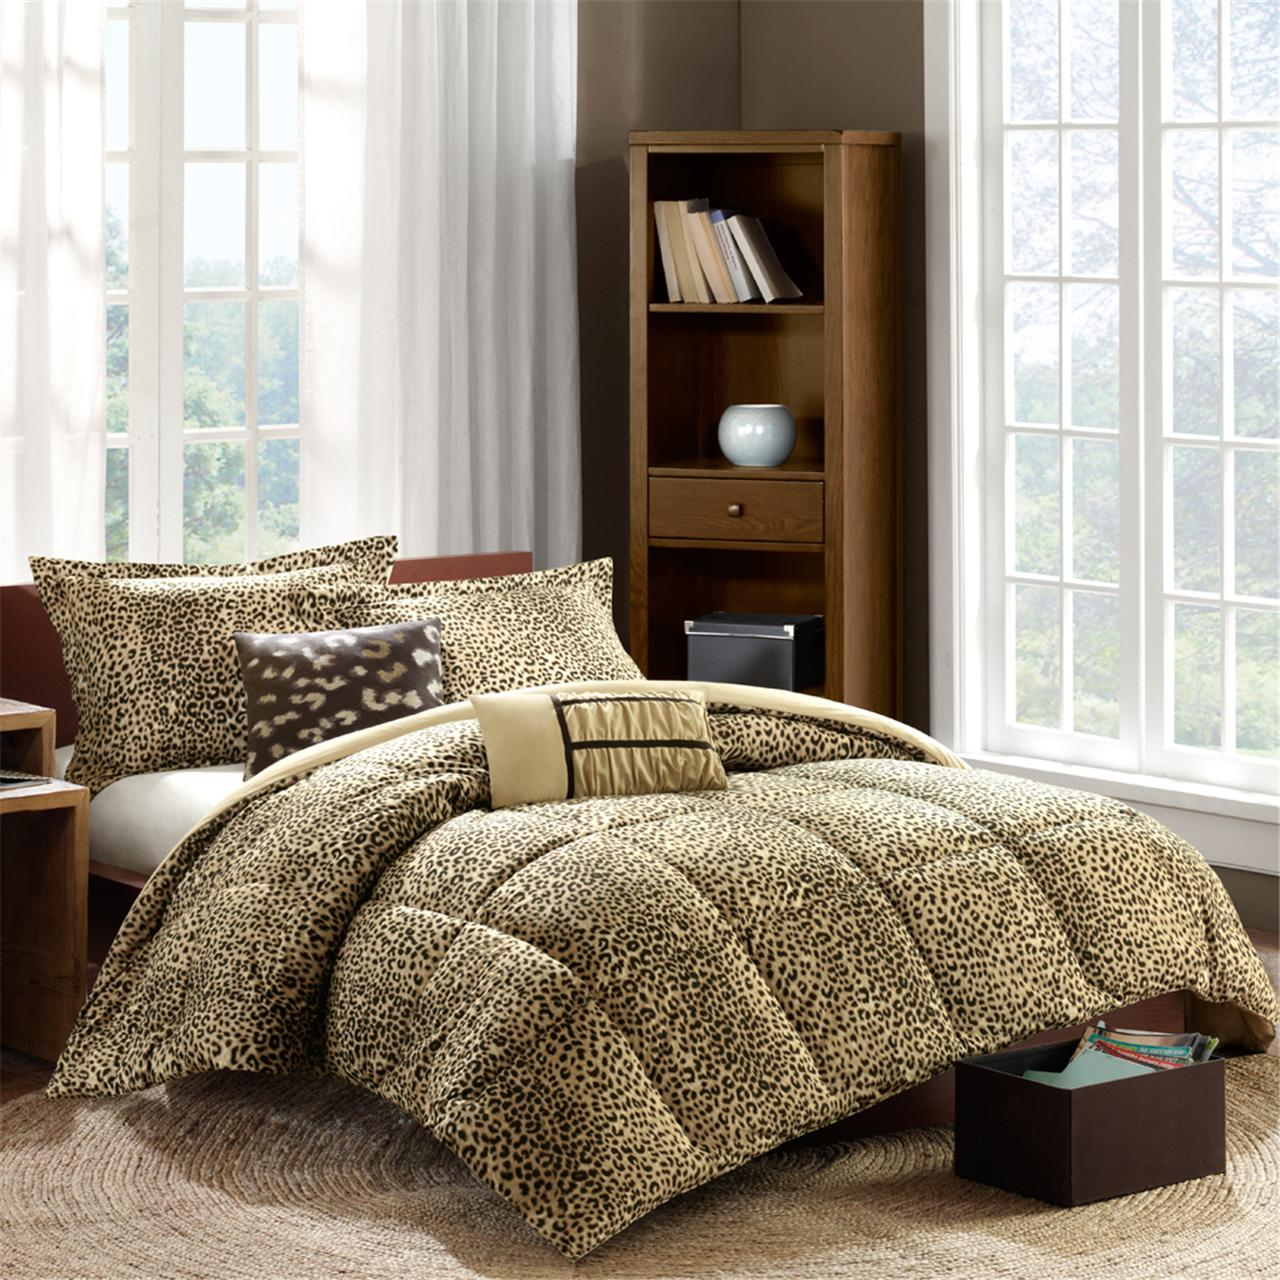 Intelligent Design Cheetah Comforter Set